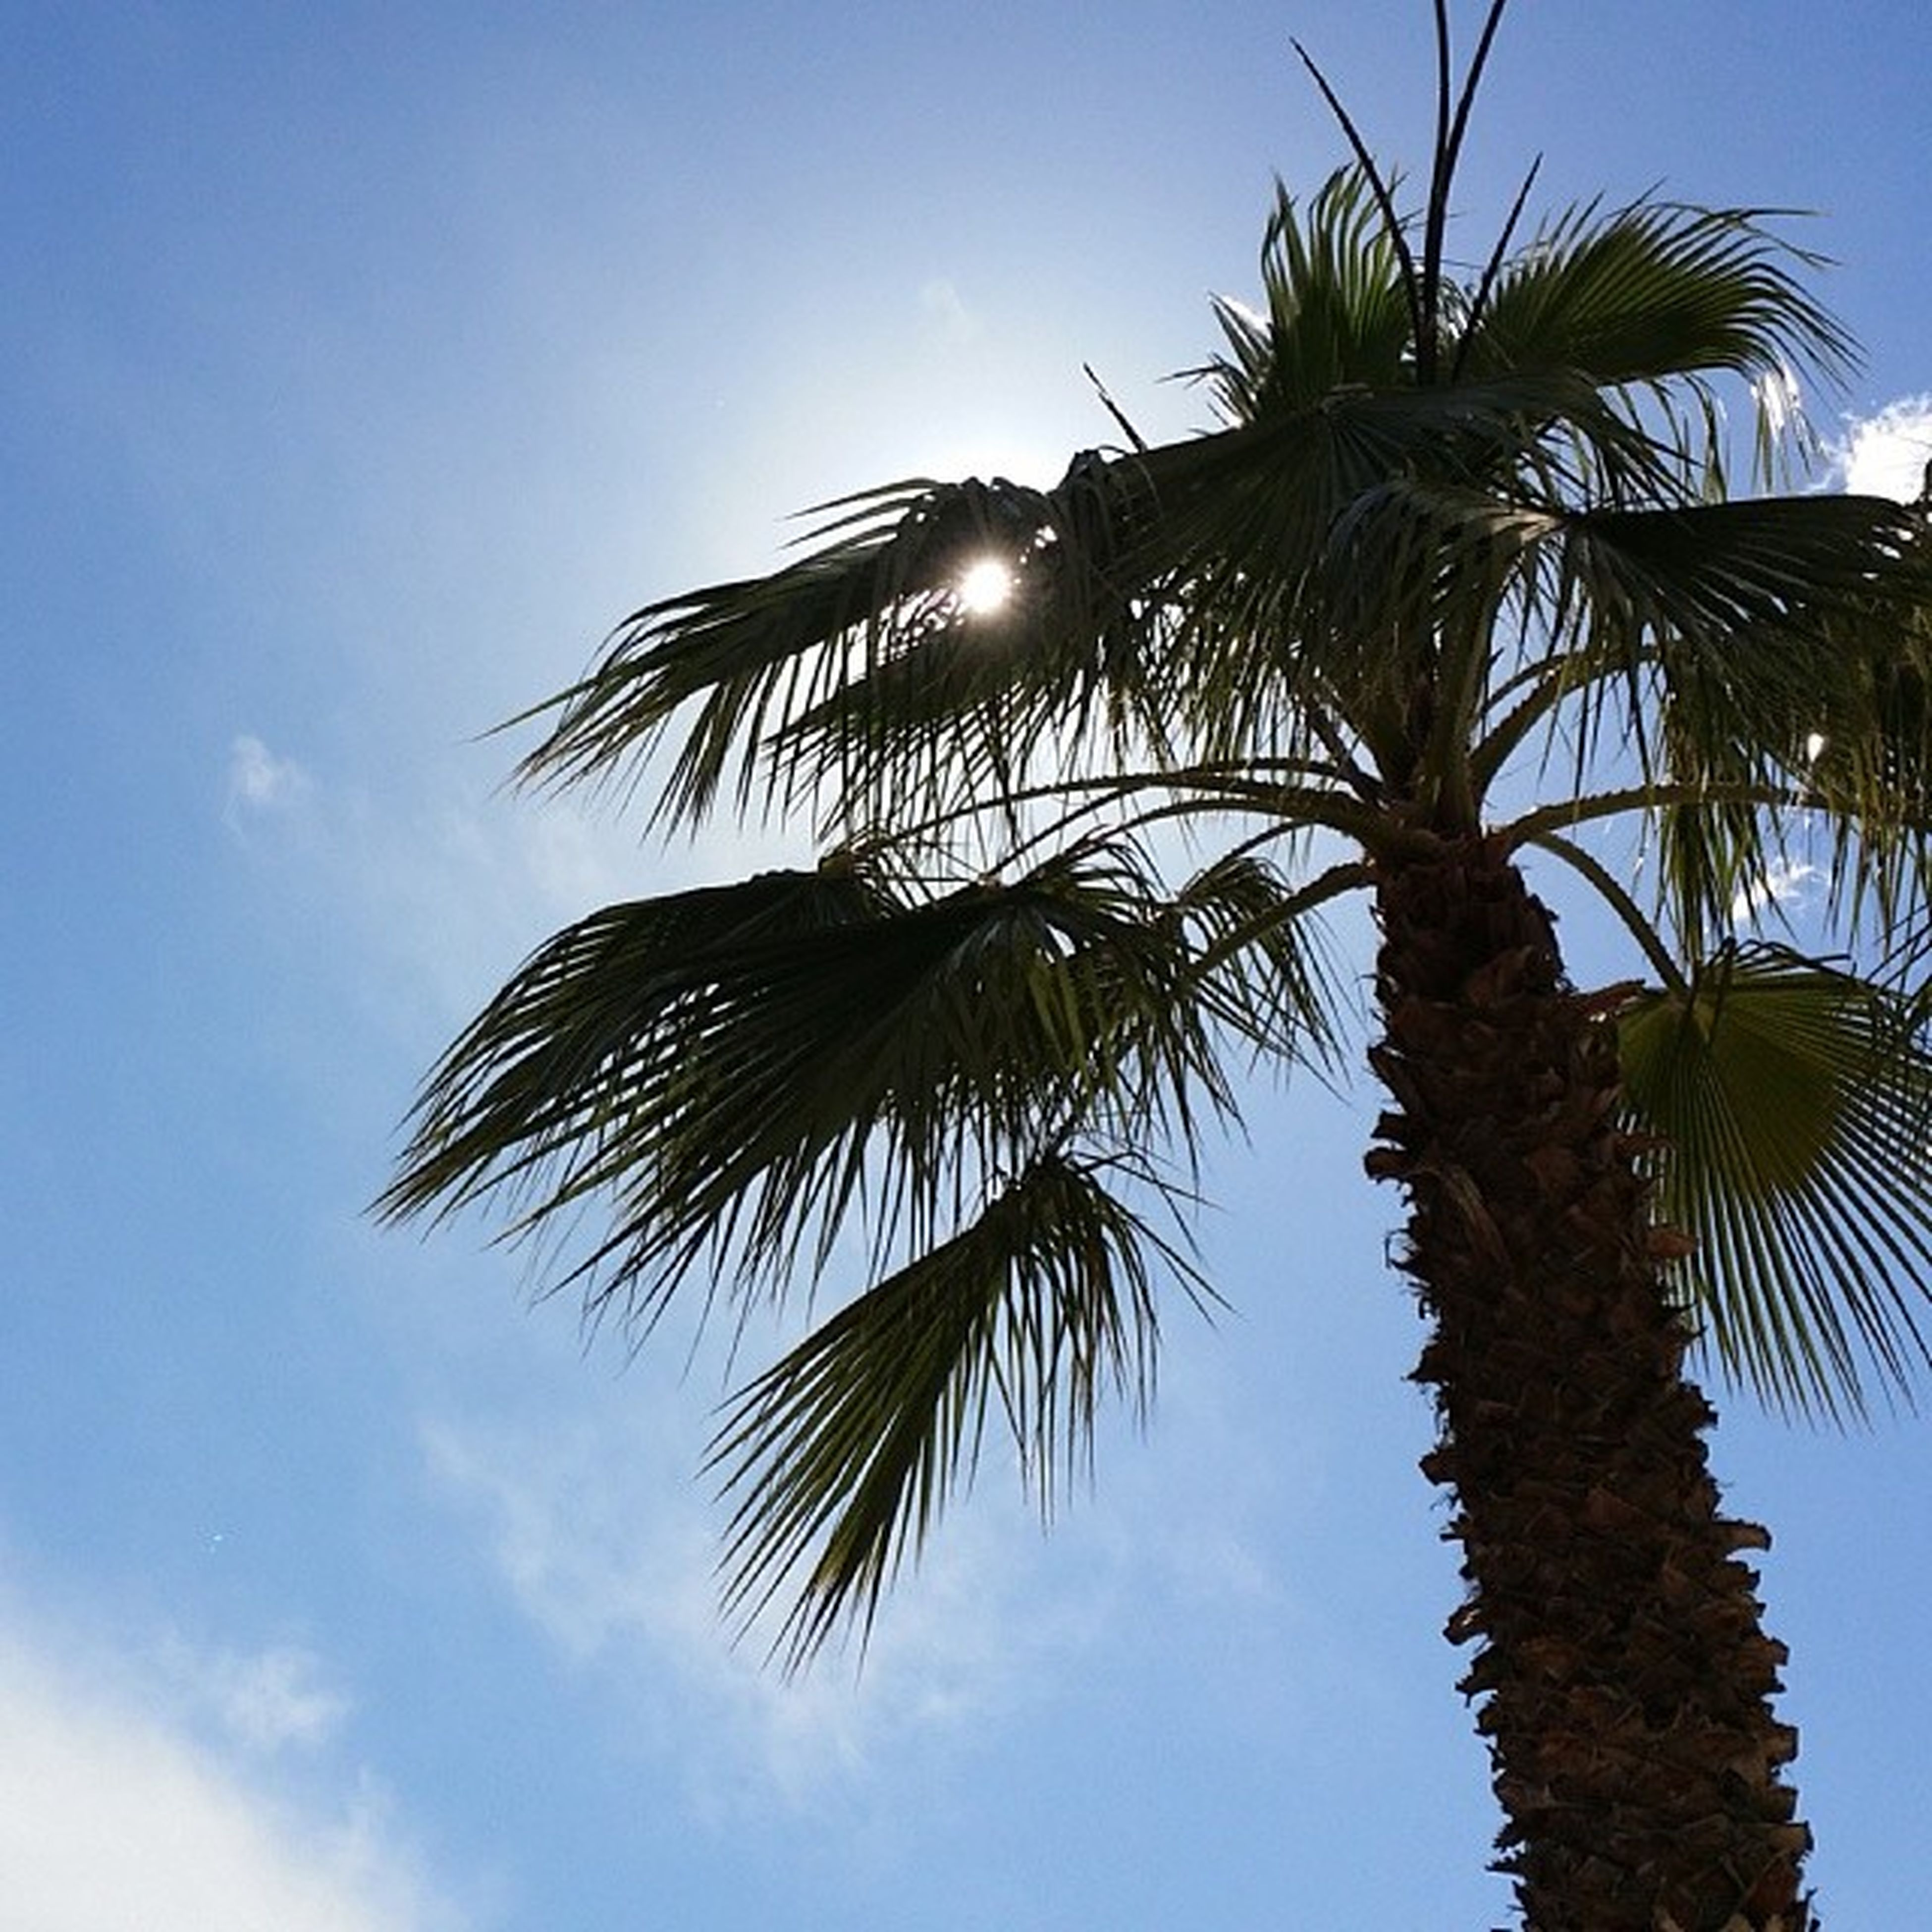 low angle view, palm tree, tree, sky, growth, sun, sunlight, nature, blue, tree trunk, tranquility, clear sky, coconut palm tree, beauty in nature, branch, sunbeam, tall - high, day, outdoors, lens flare